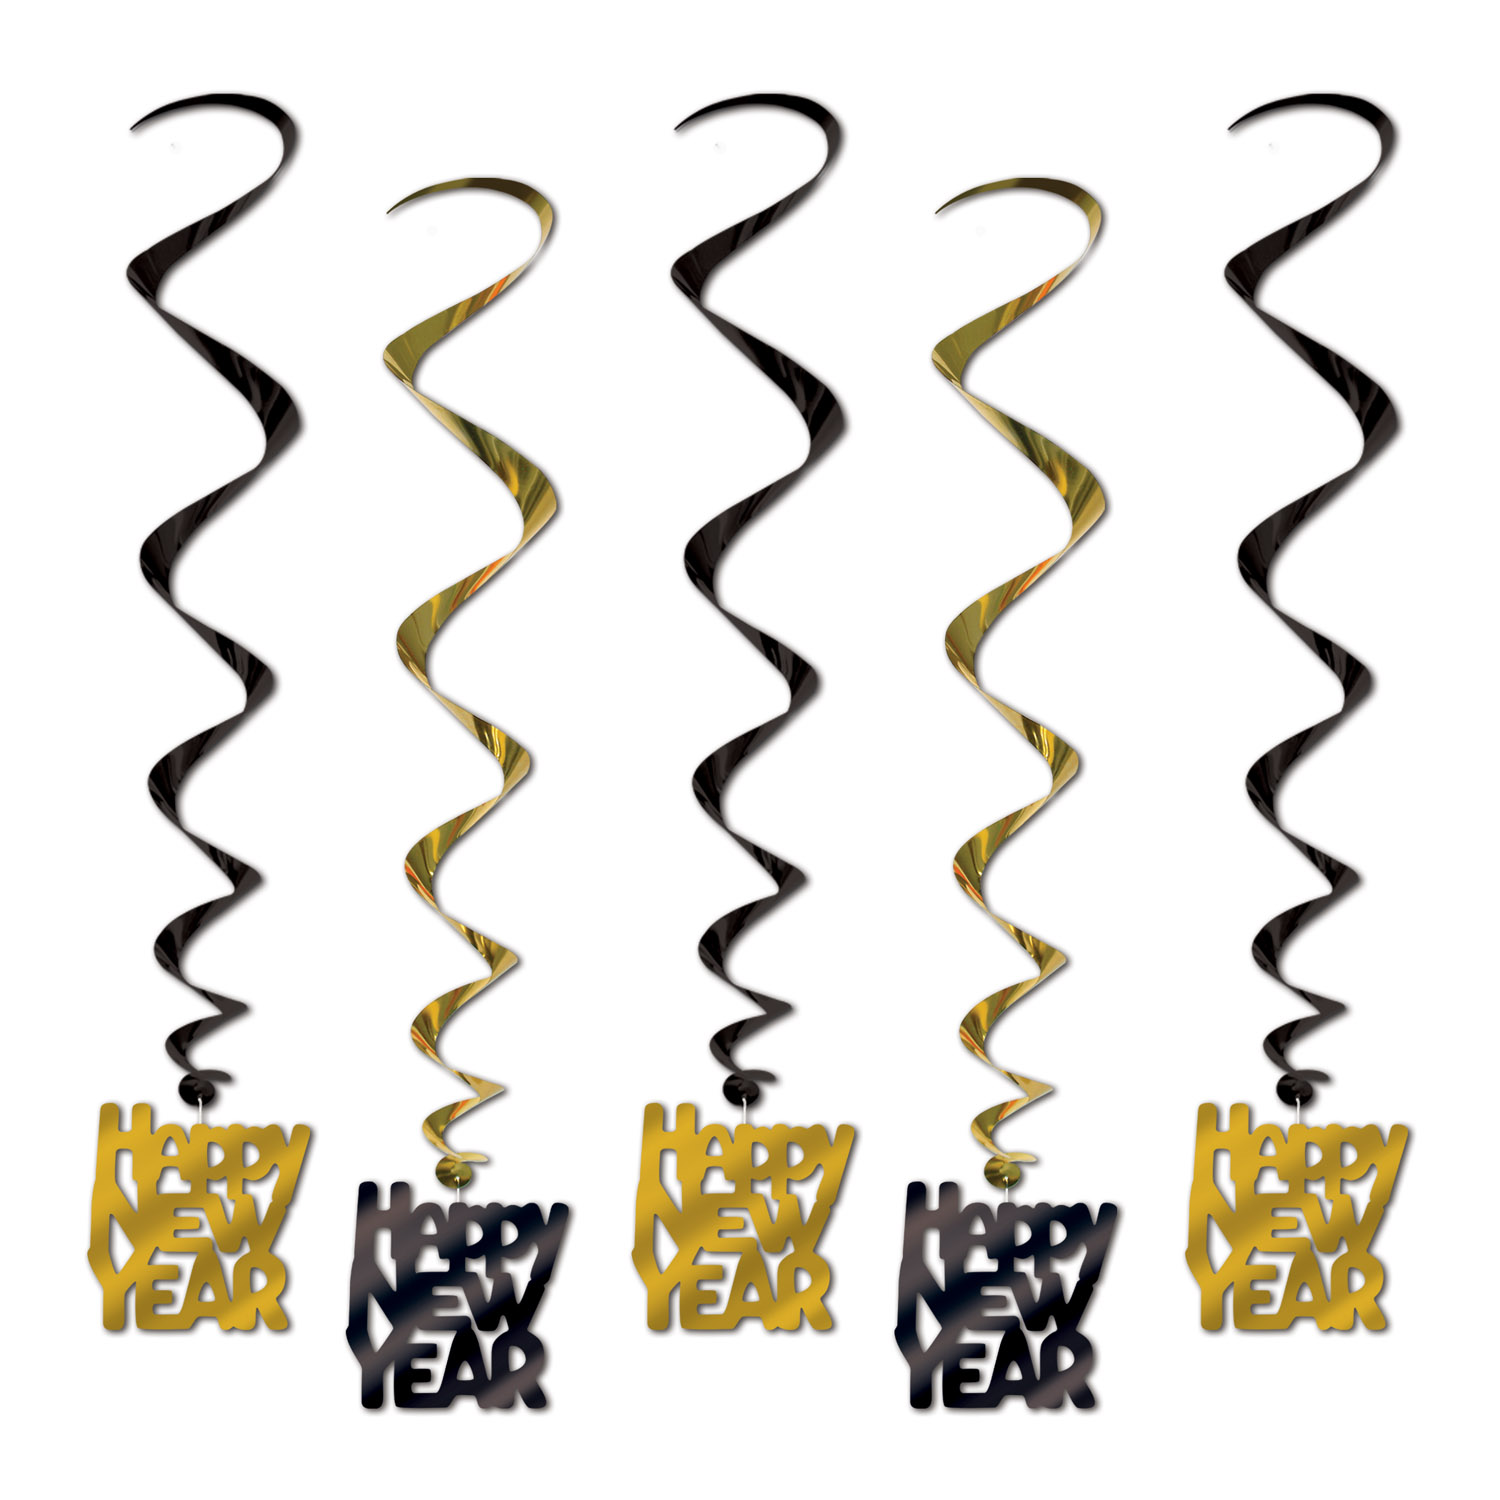 Happy New Year Whirls 33in black & gold 5 Ct